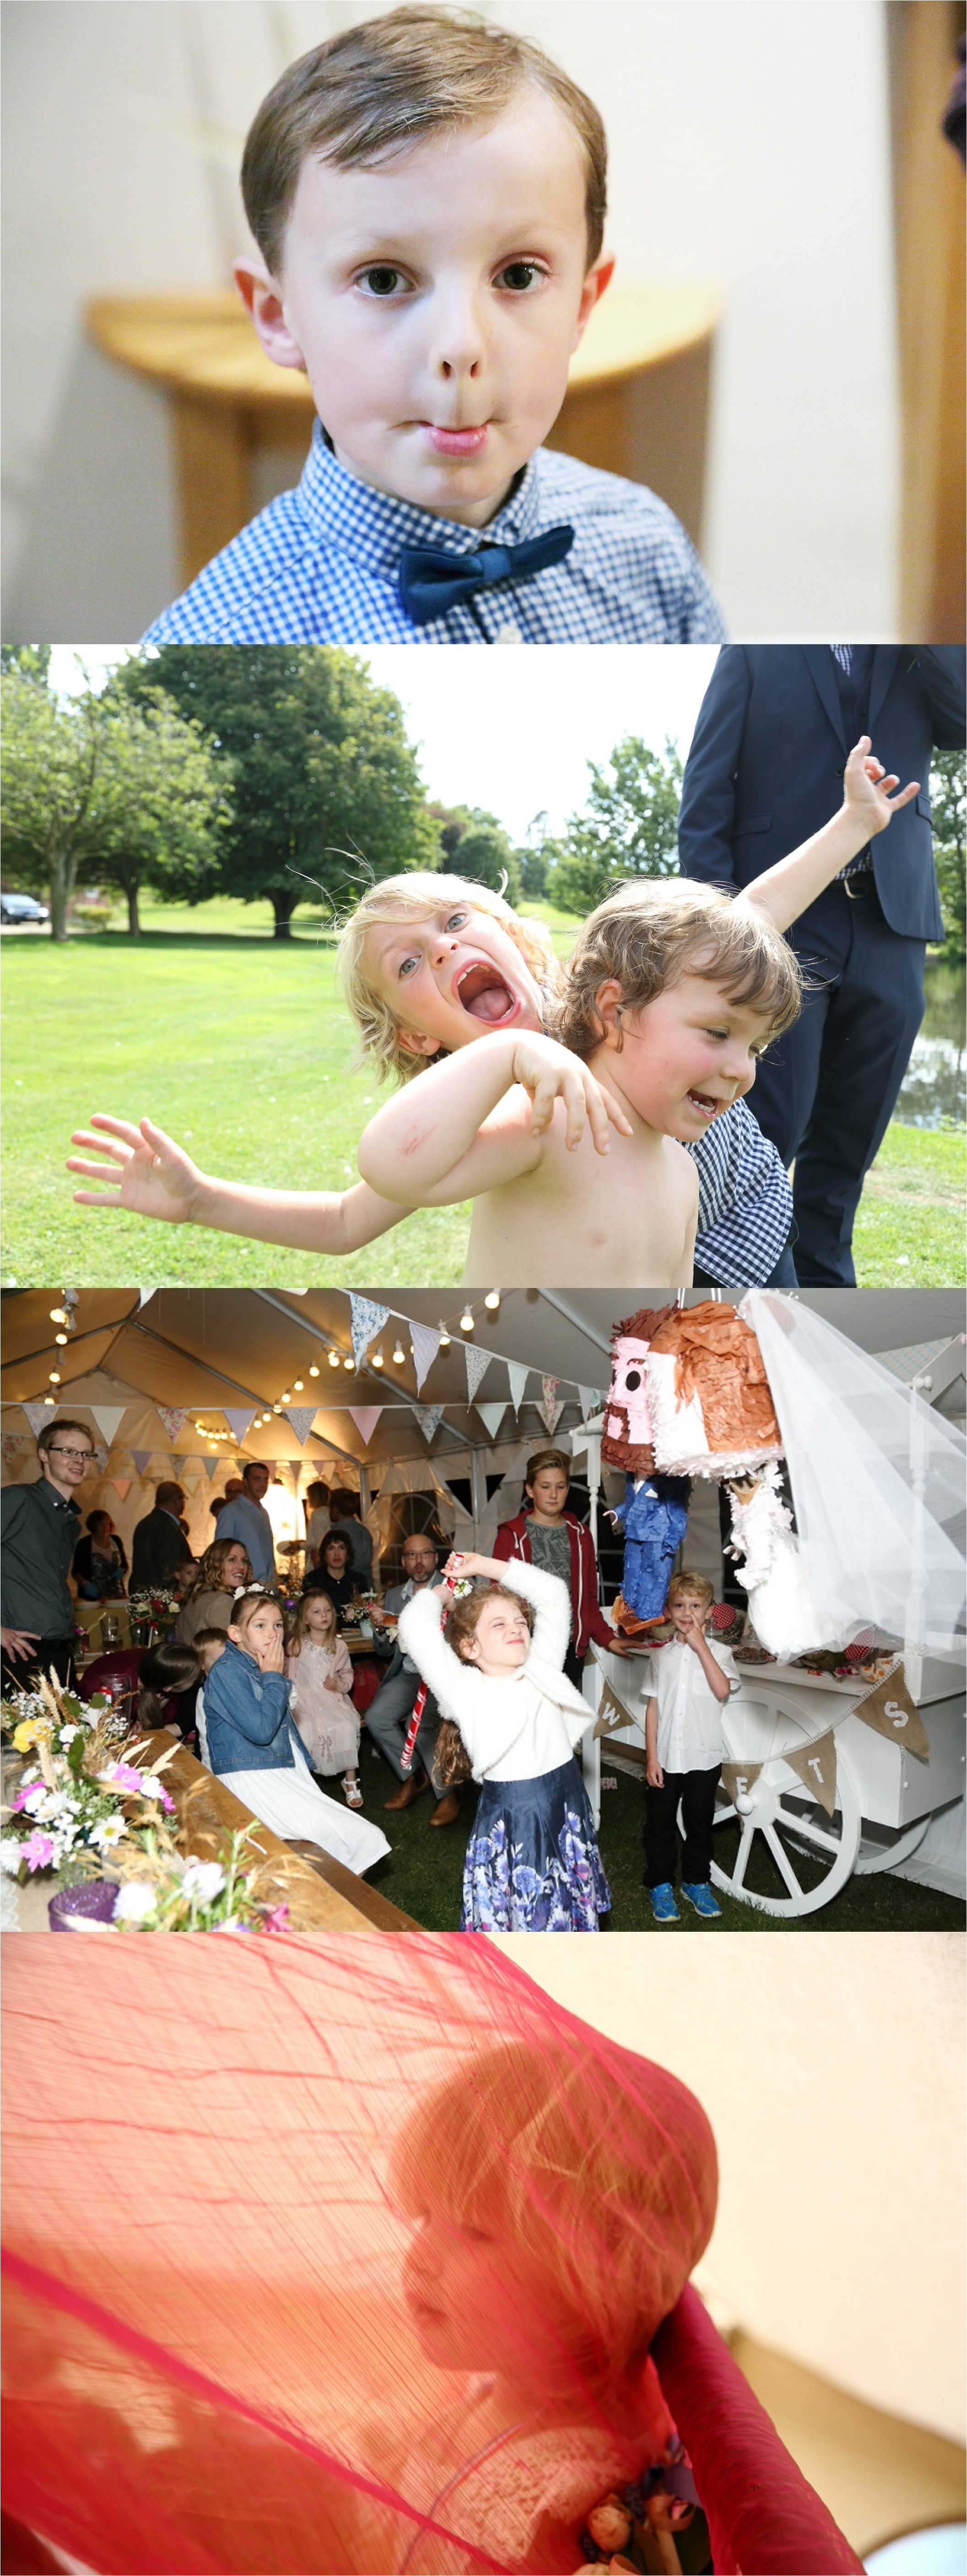 kids at weddings, hints and tips for haivng a smoothly running child friendly day. cambridge wedding